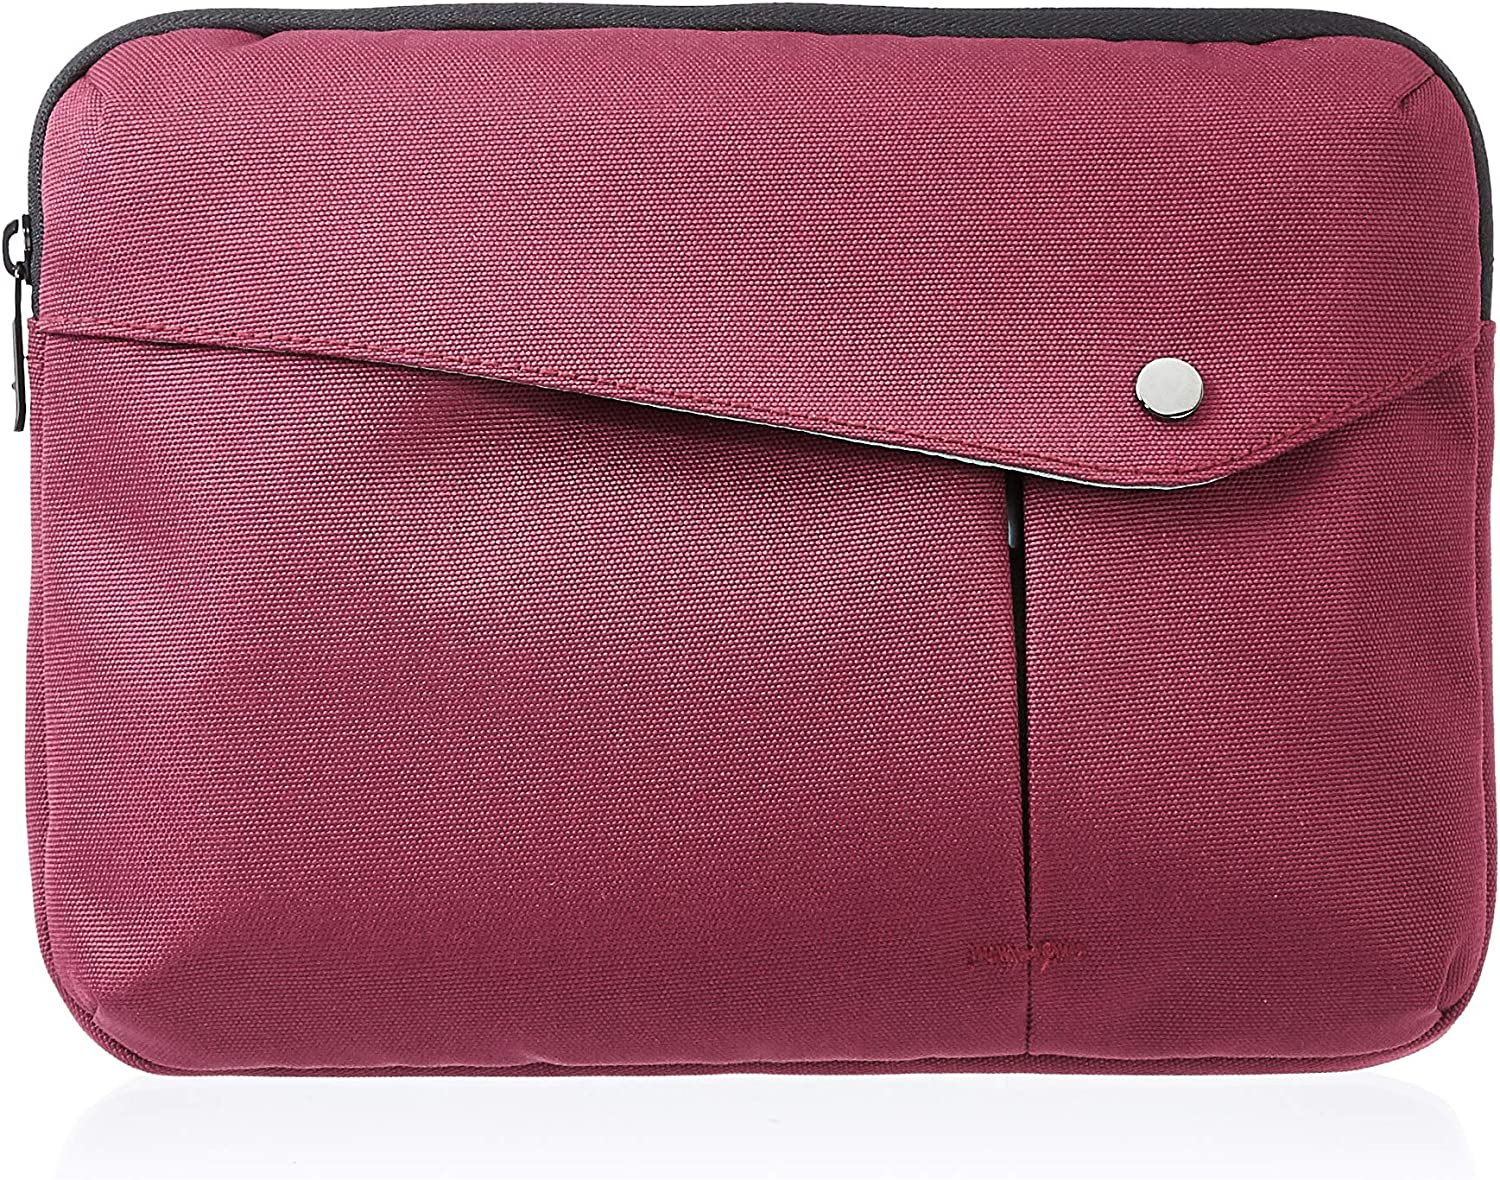 AmazonBasics Laptop Sleeve - 10-Inch, Maroon